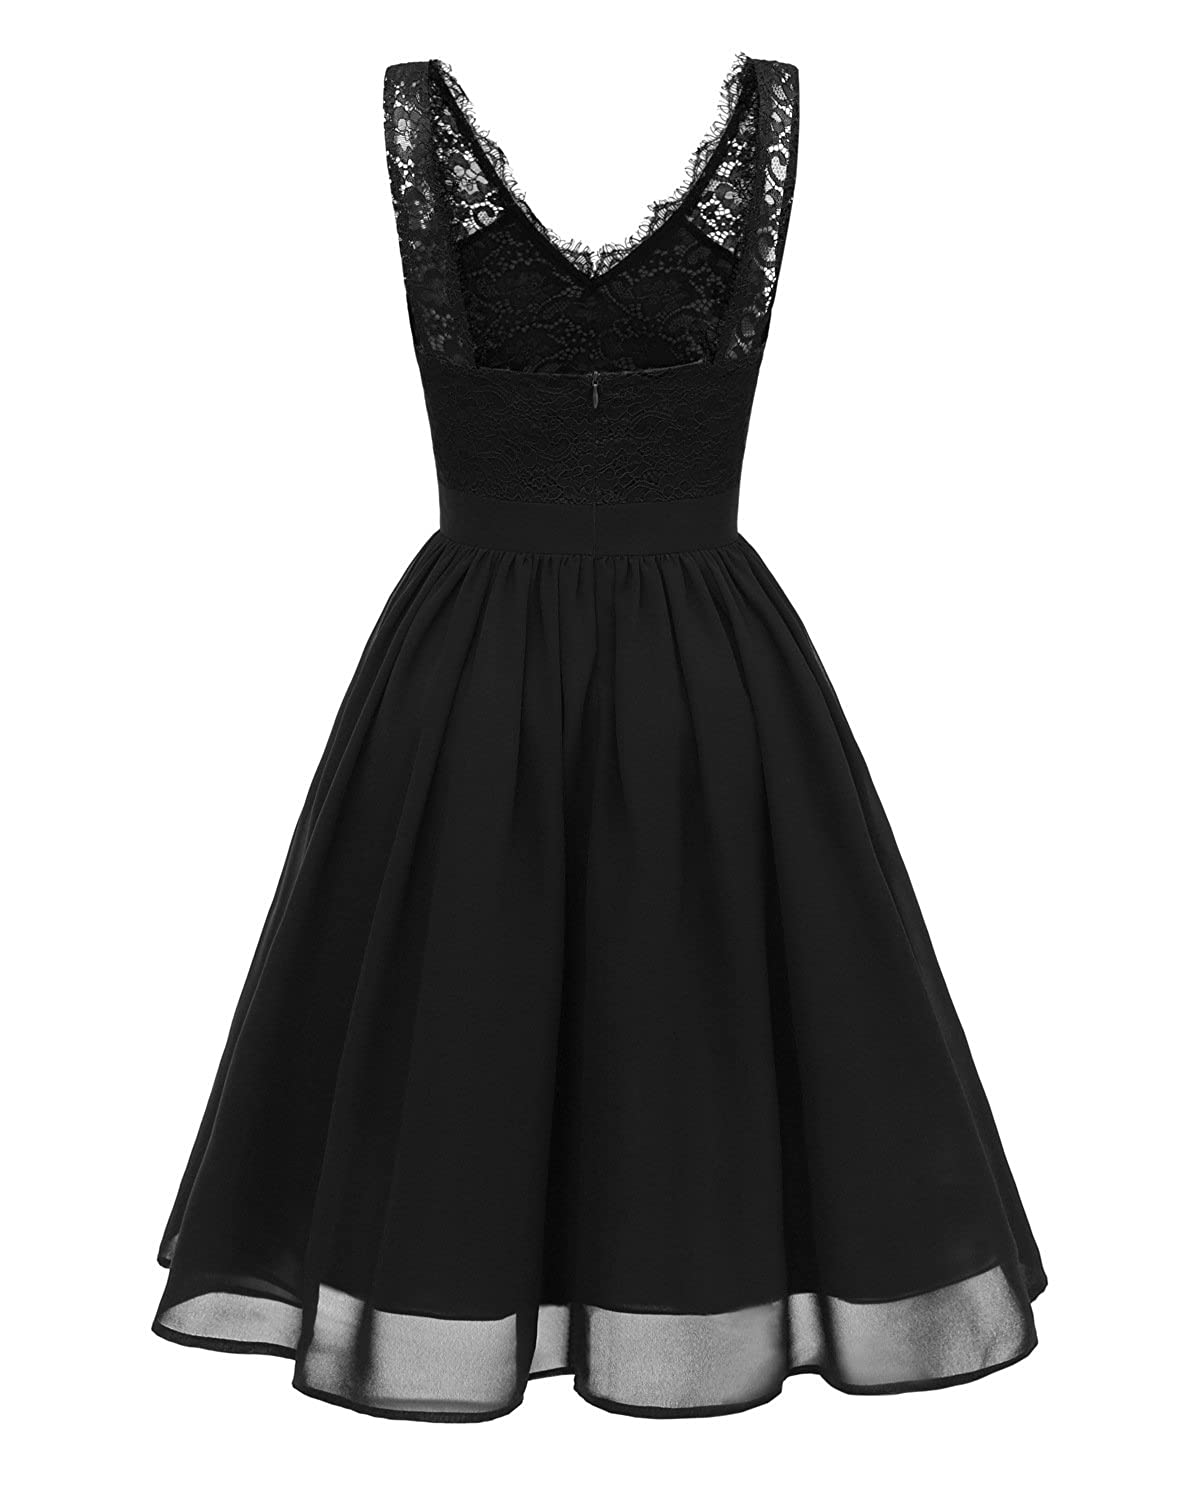 Caissen Womens Midi V-Neck Sleeveless Chiffon Lace Formal Gown A-Line Party Cocktail Dress